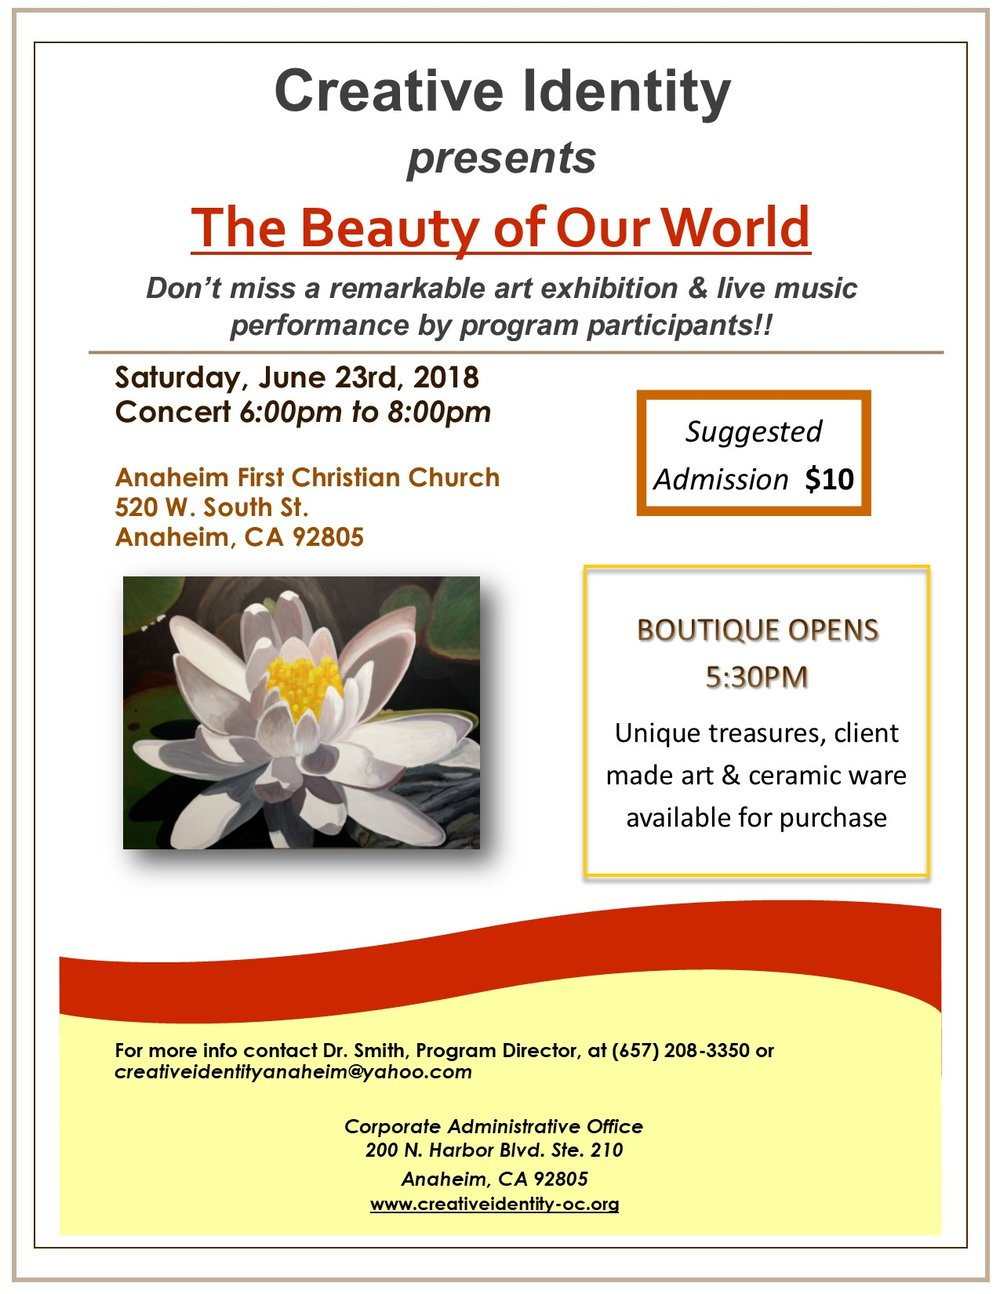 "Please join us!! - Creative Identity presents ""The Beauty of Our World,"" a summer concert and exhibition. Don't miss a remarkable art exhibition & live music performance by program participants!!Saturday, June 23rd, 2018Boutique opens 5:30pmConcert 6:00pm to 8:00pmLocation: Anaheim First Christian Church520 W. South St.Anaheim, CA 92805Suggested Admission $10For more information please contact Dr. Smith, Program Director, at (657) 208-3350 </p>"